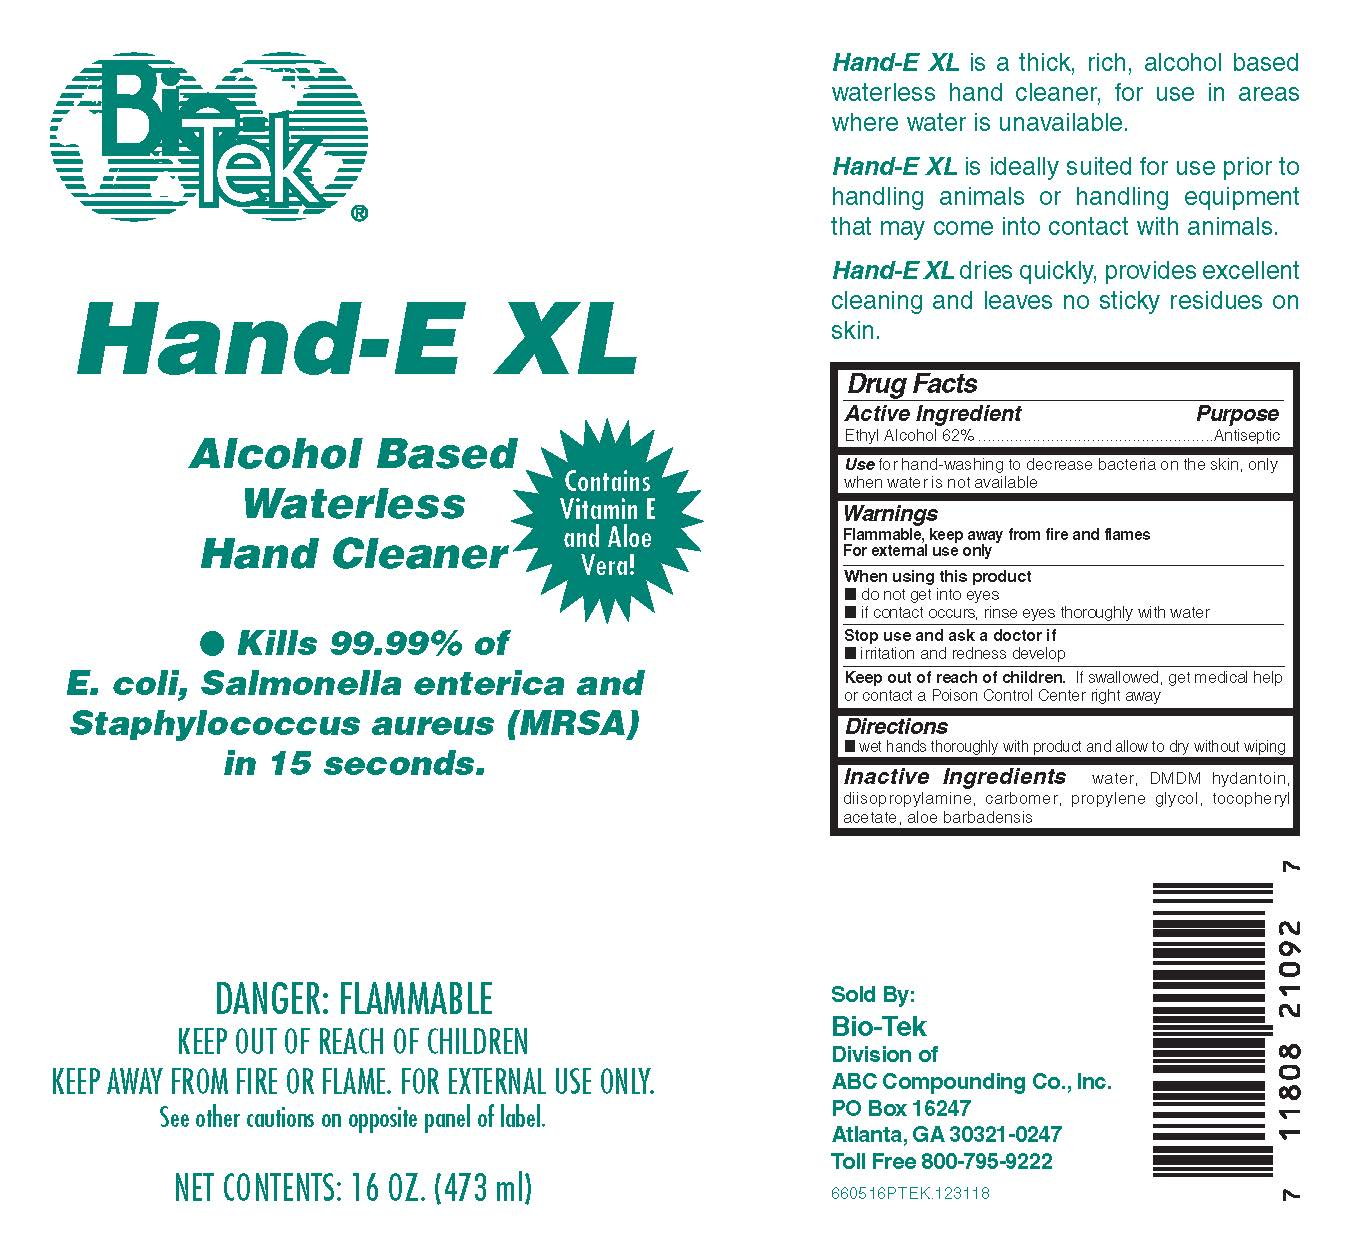 image of bottle label